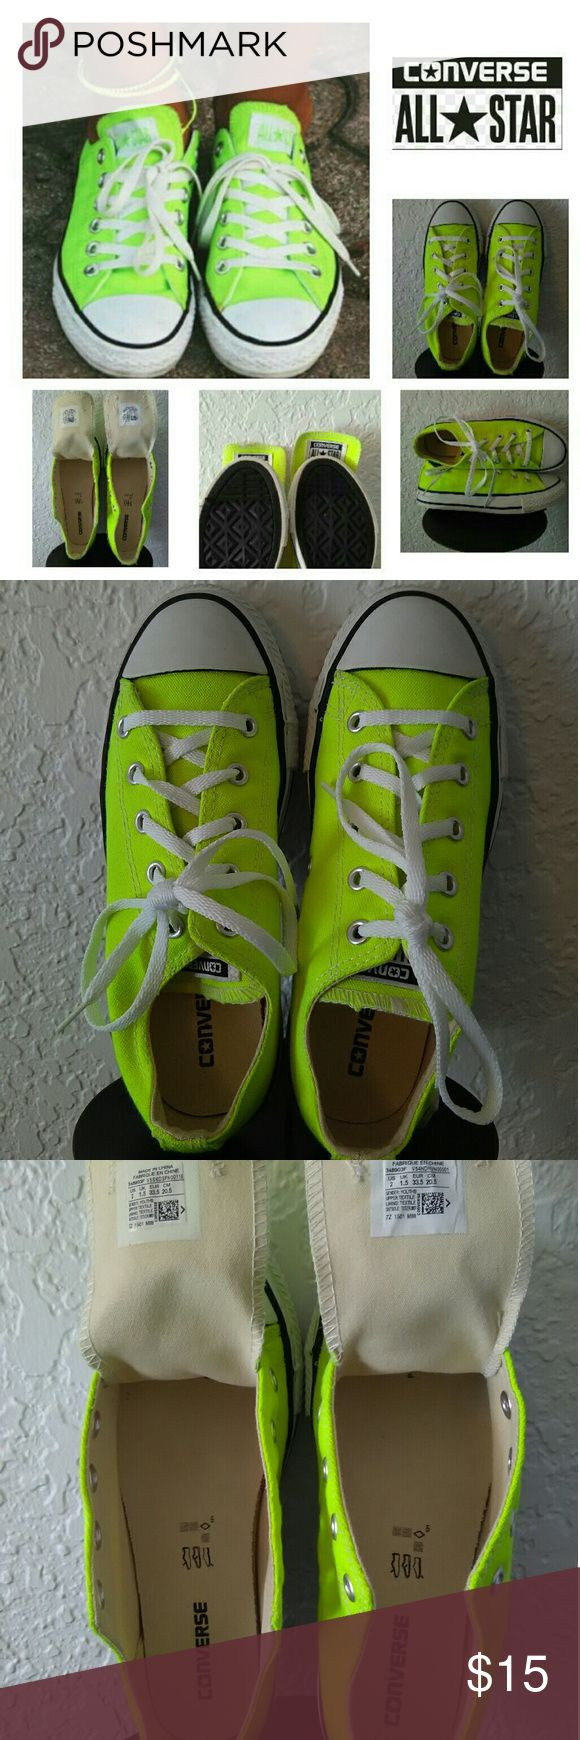 """""""NEON CONVERSE"""" This are cute pair of NEON COLORED """"CONVERSE""""... They have been worn several times (can't tell by the inside)... Yet in GOOD CONDITION! These cuties are SUMMER READY :-) Converse Shoes Sneakers"""